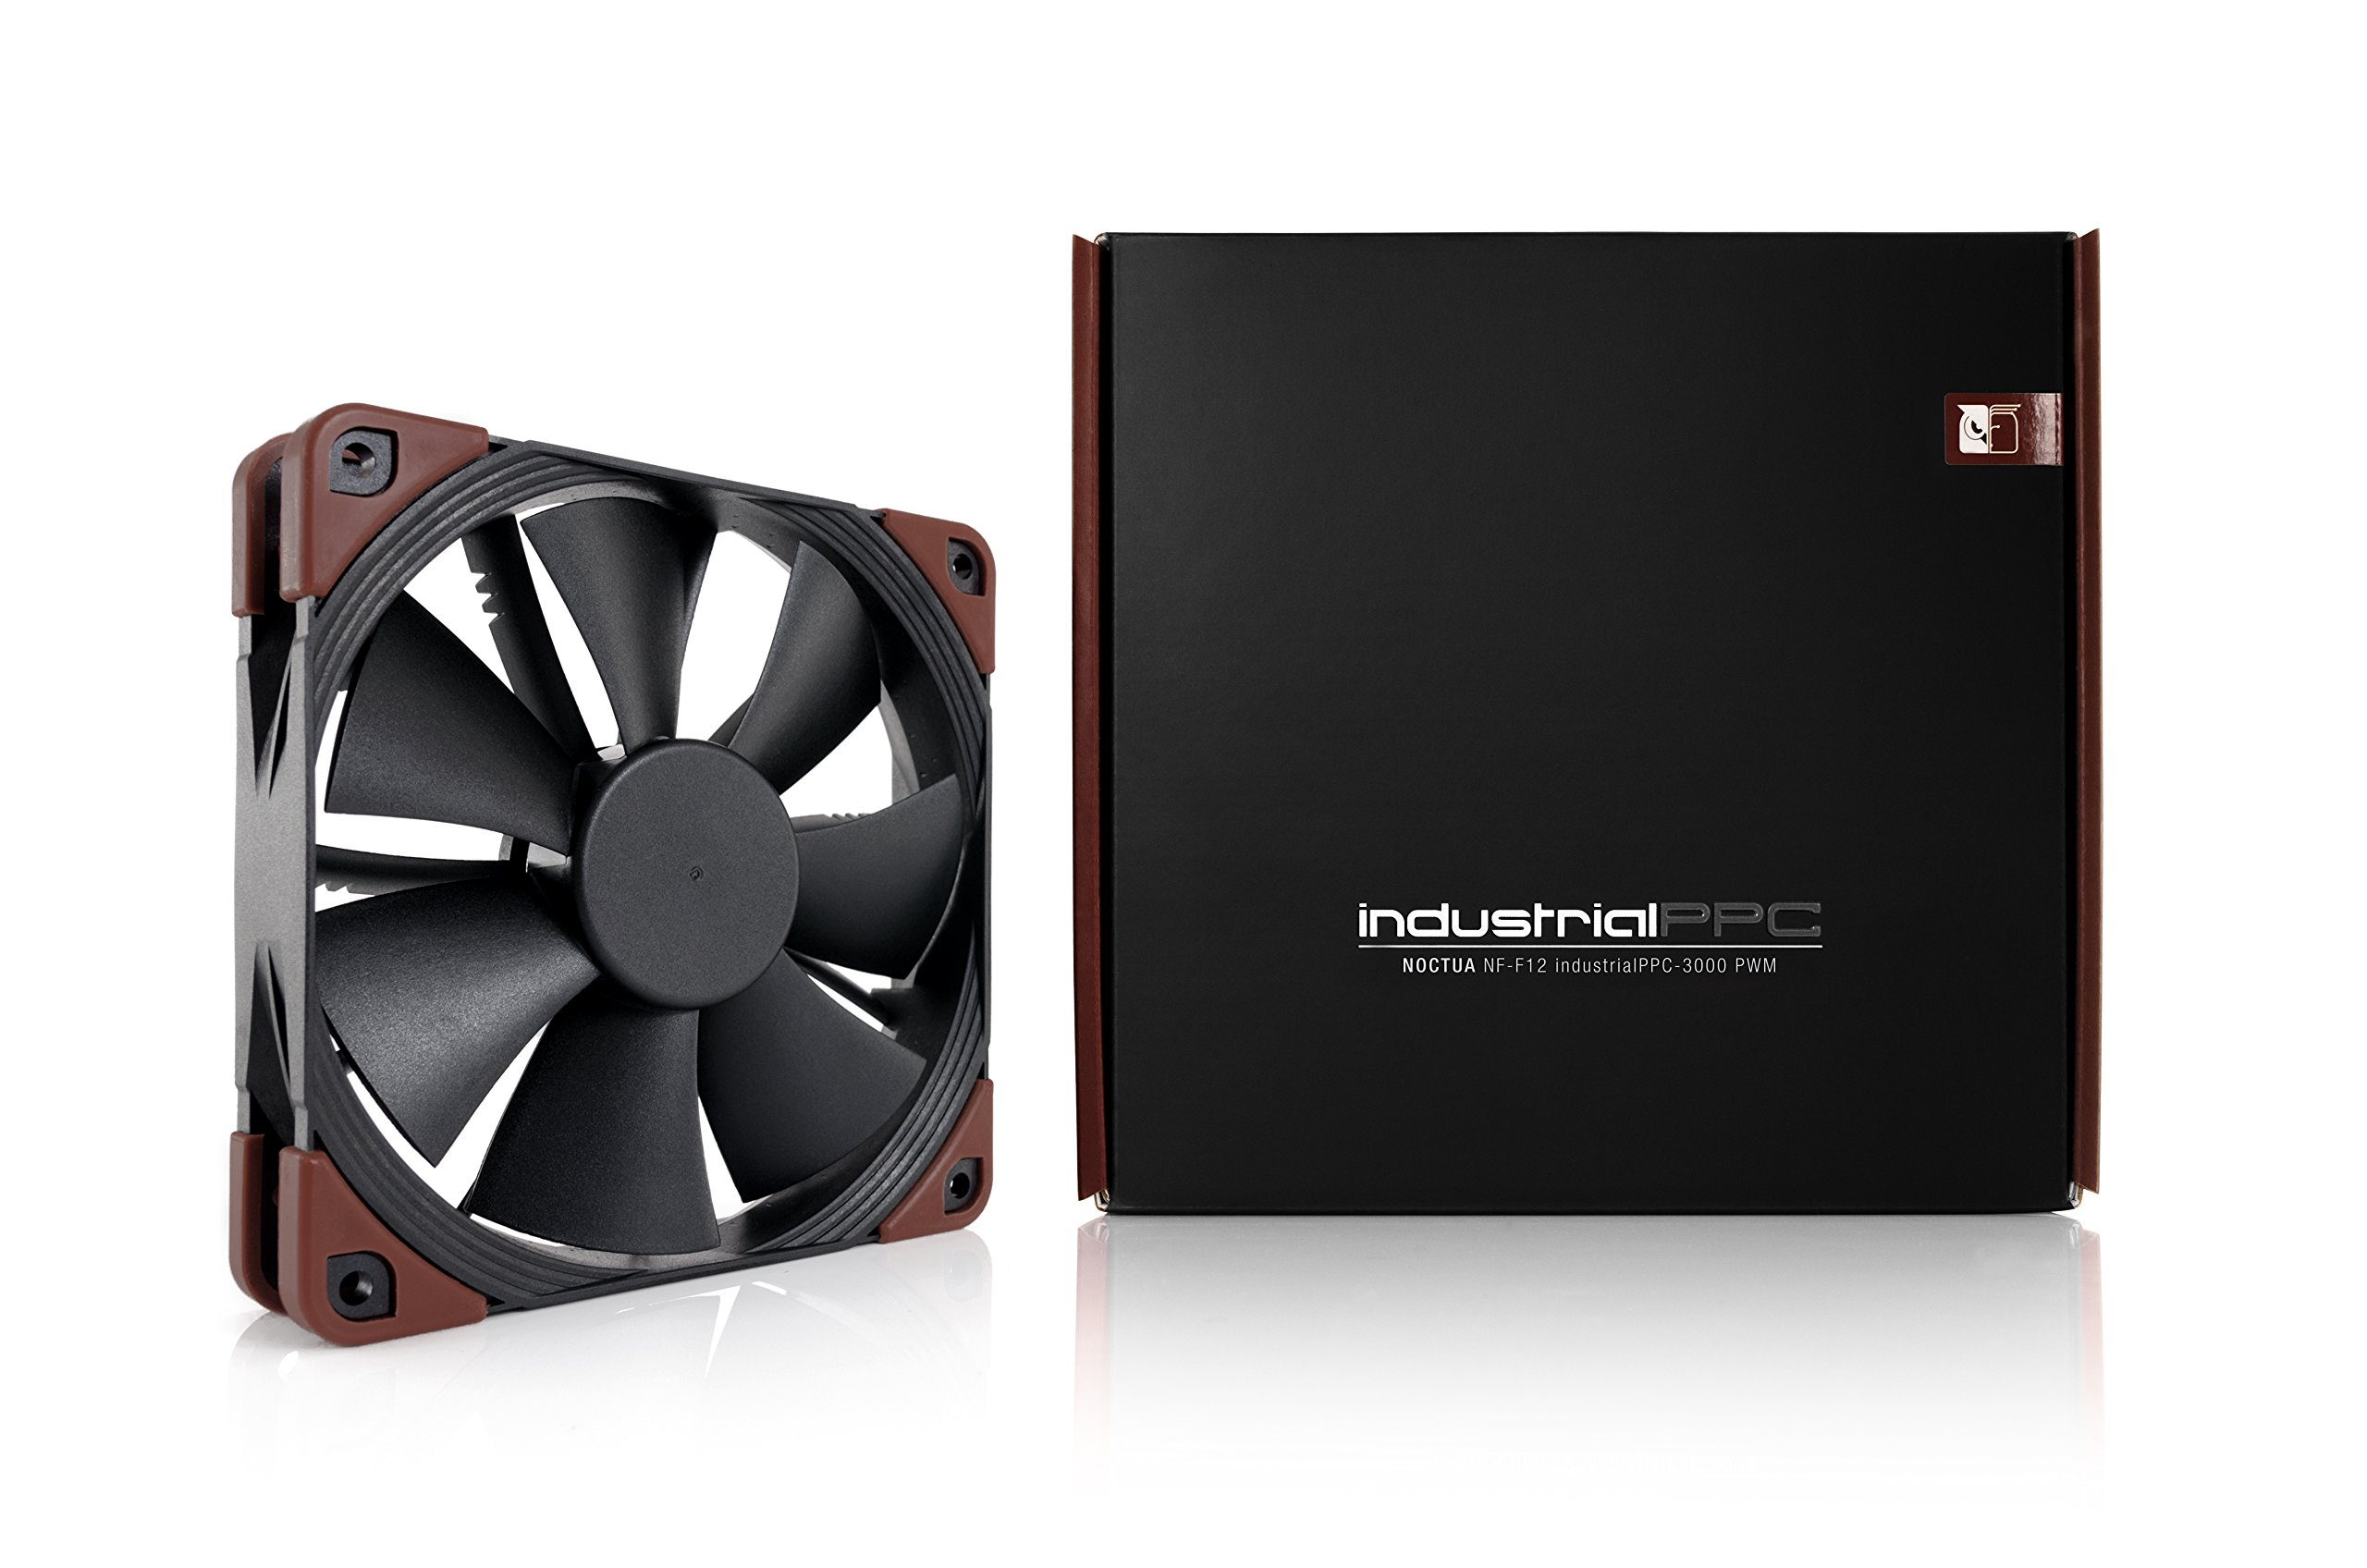 Noctua Fan with Focused Flow and SSO2 Bearing, Retail Cooling NF-F12 iPPC 3000 PWM by noctua (Image #4)